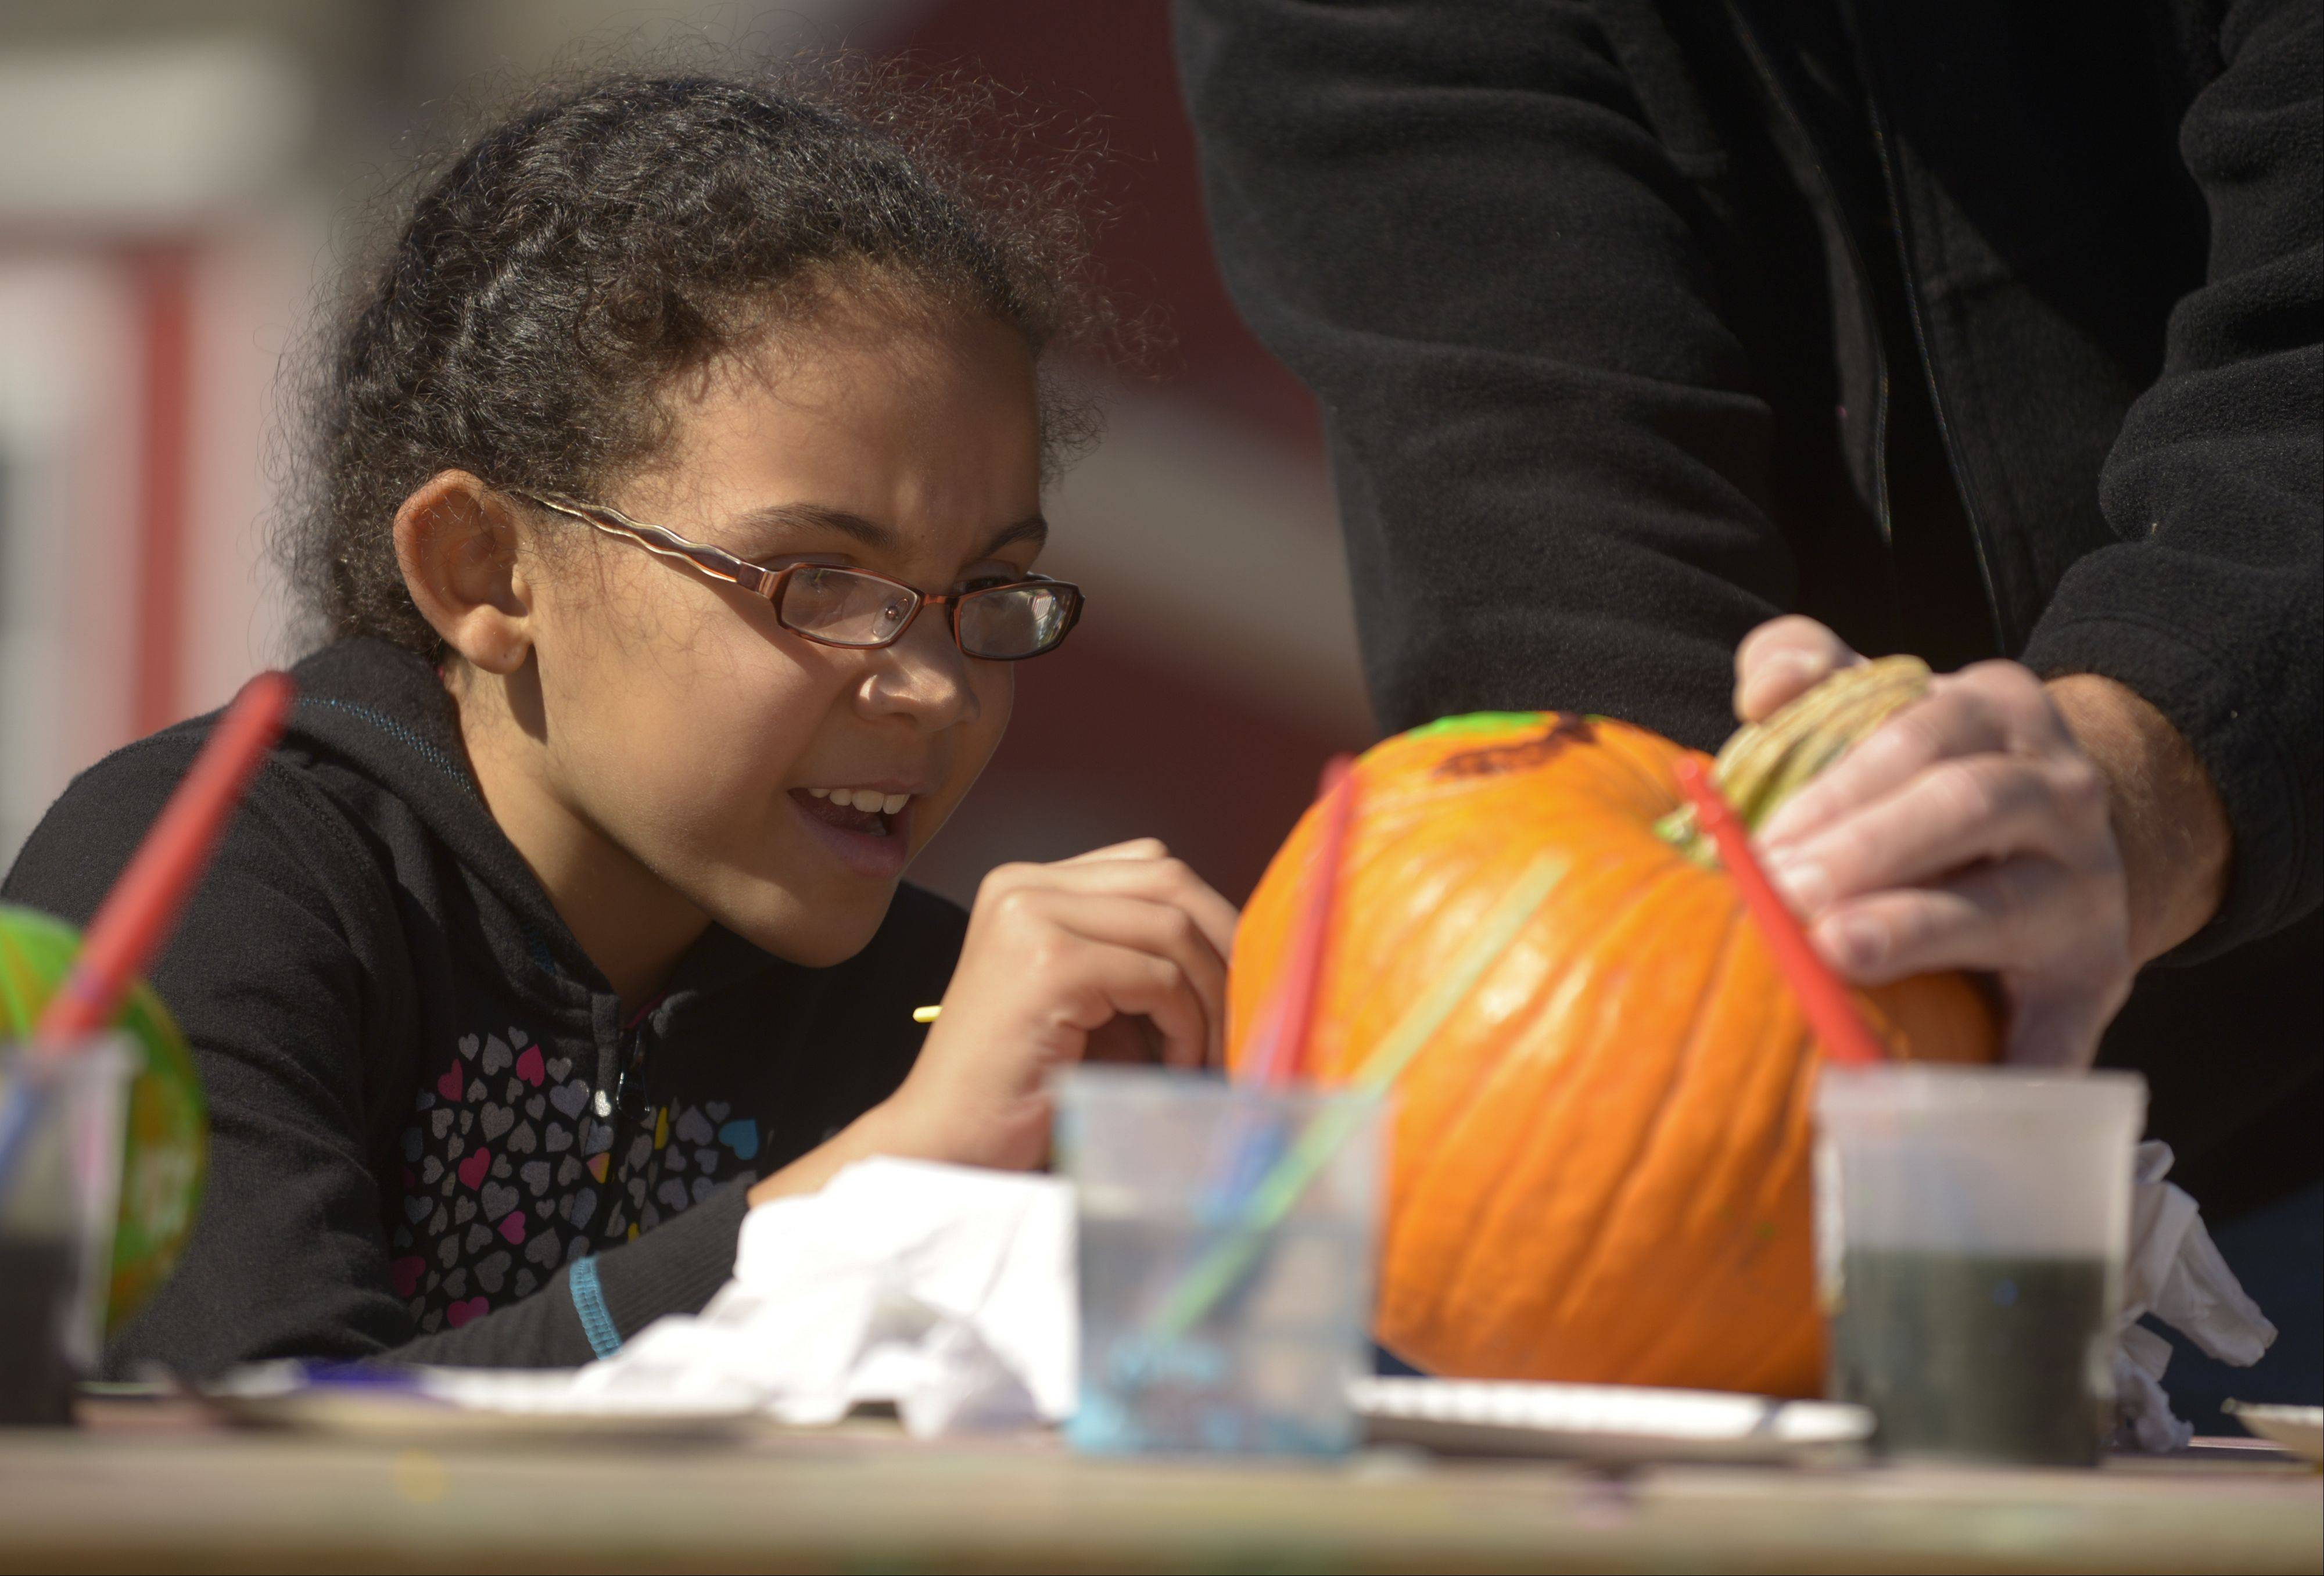 Morgan Pfeifer, 7, of Waukegan paints pumpkins Sunday while visiting the Bonner Heritage Farm's Country Fair in Lindenhurst. The event featured wagon rides, crafts, games and a petting zoo on an 1842 farm.